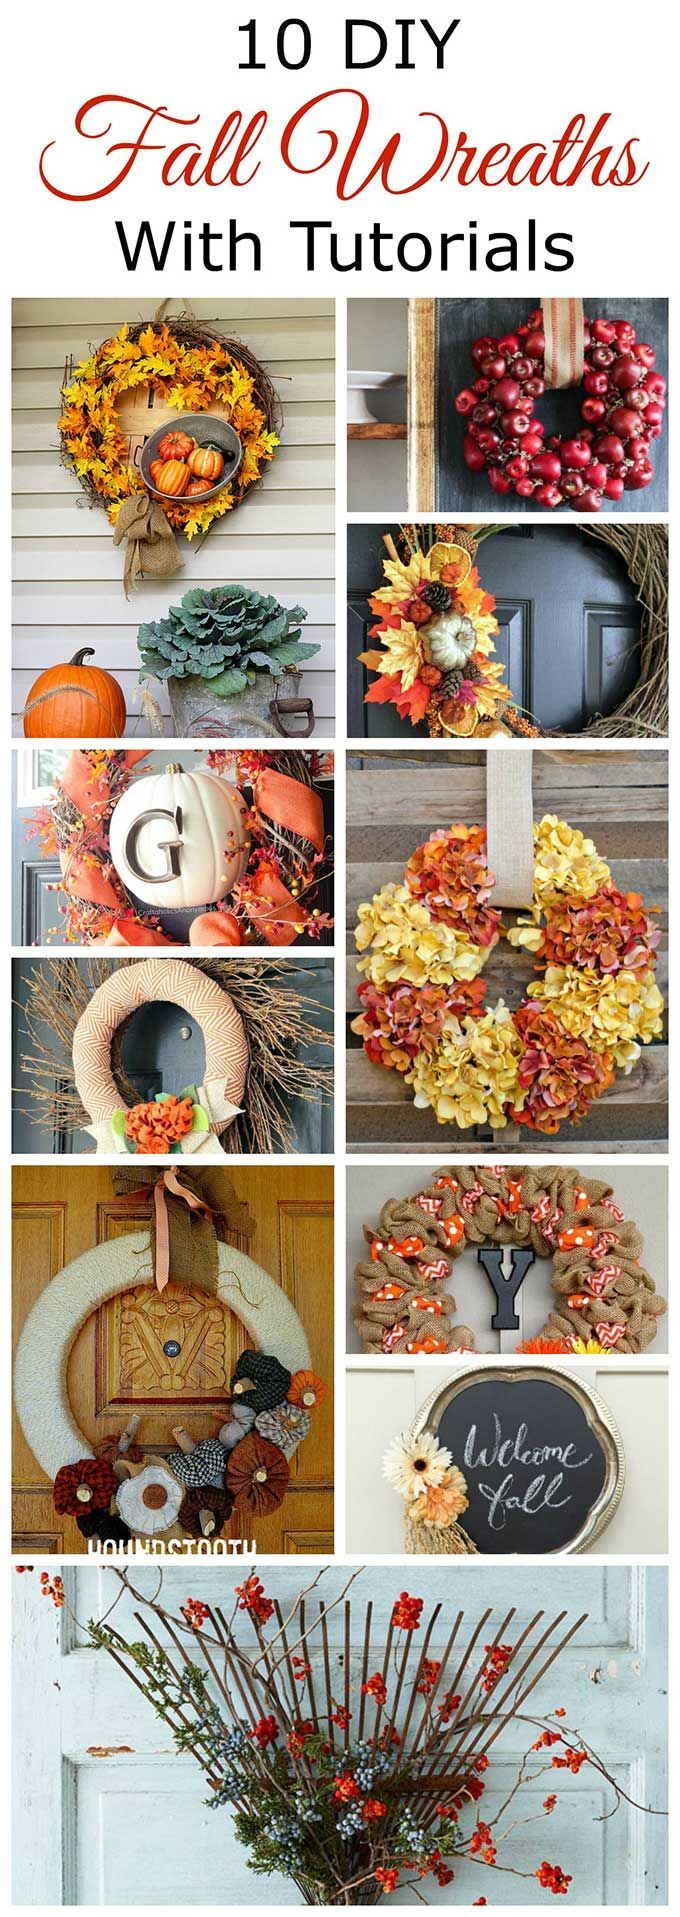 10 DIY Fall Wreaths For Your Front